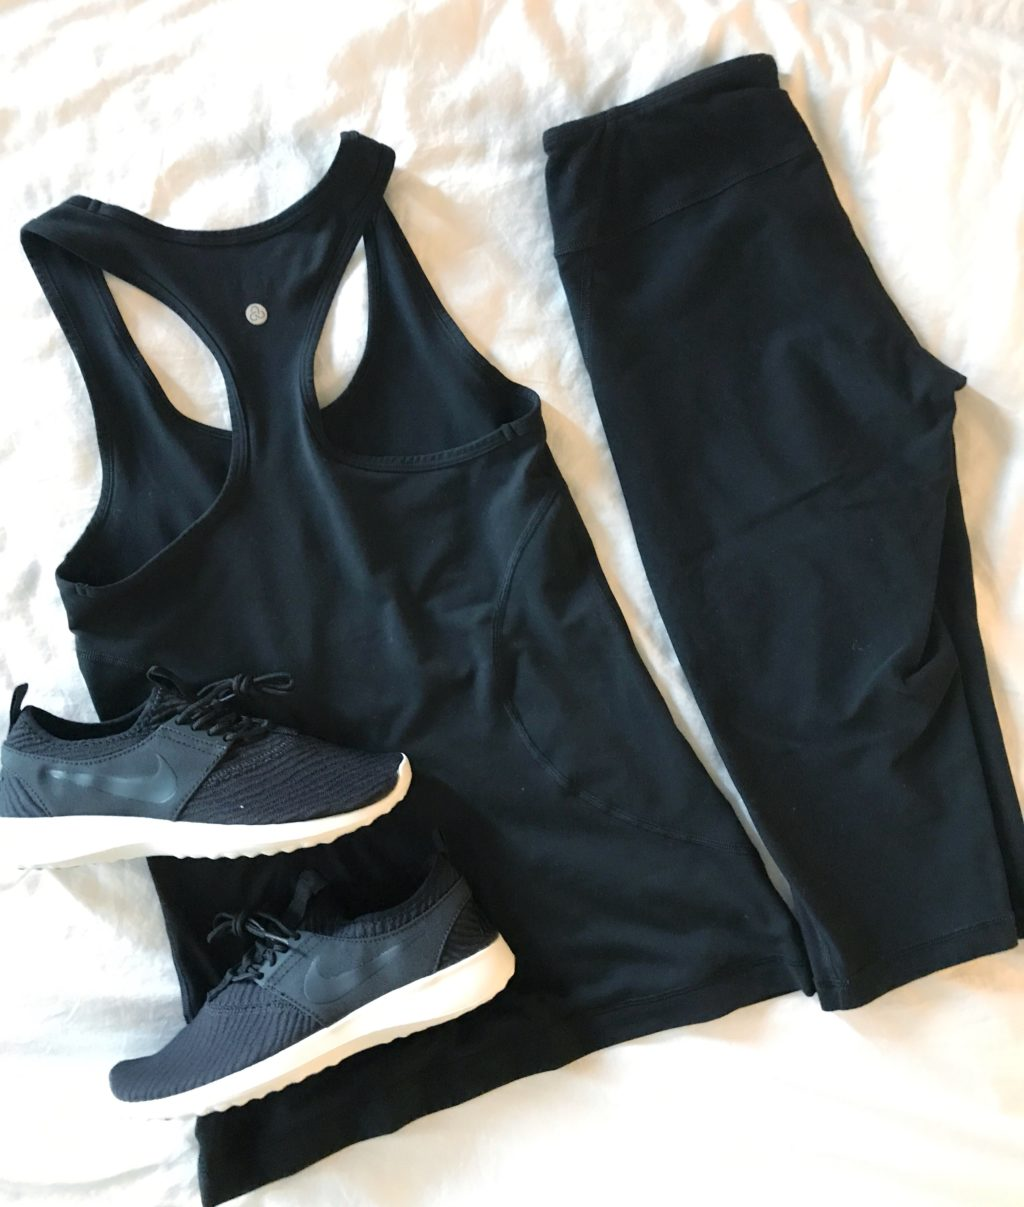 nordstrom anniversary sale workout wear